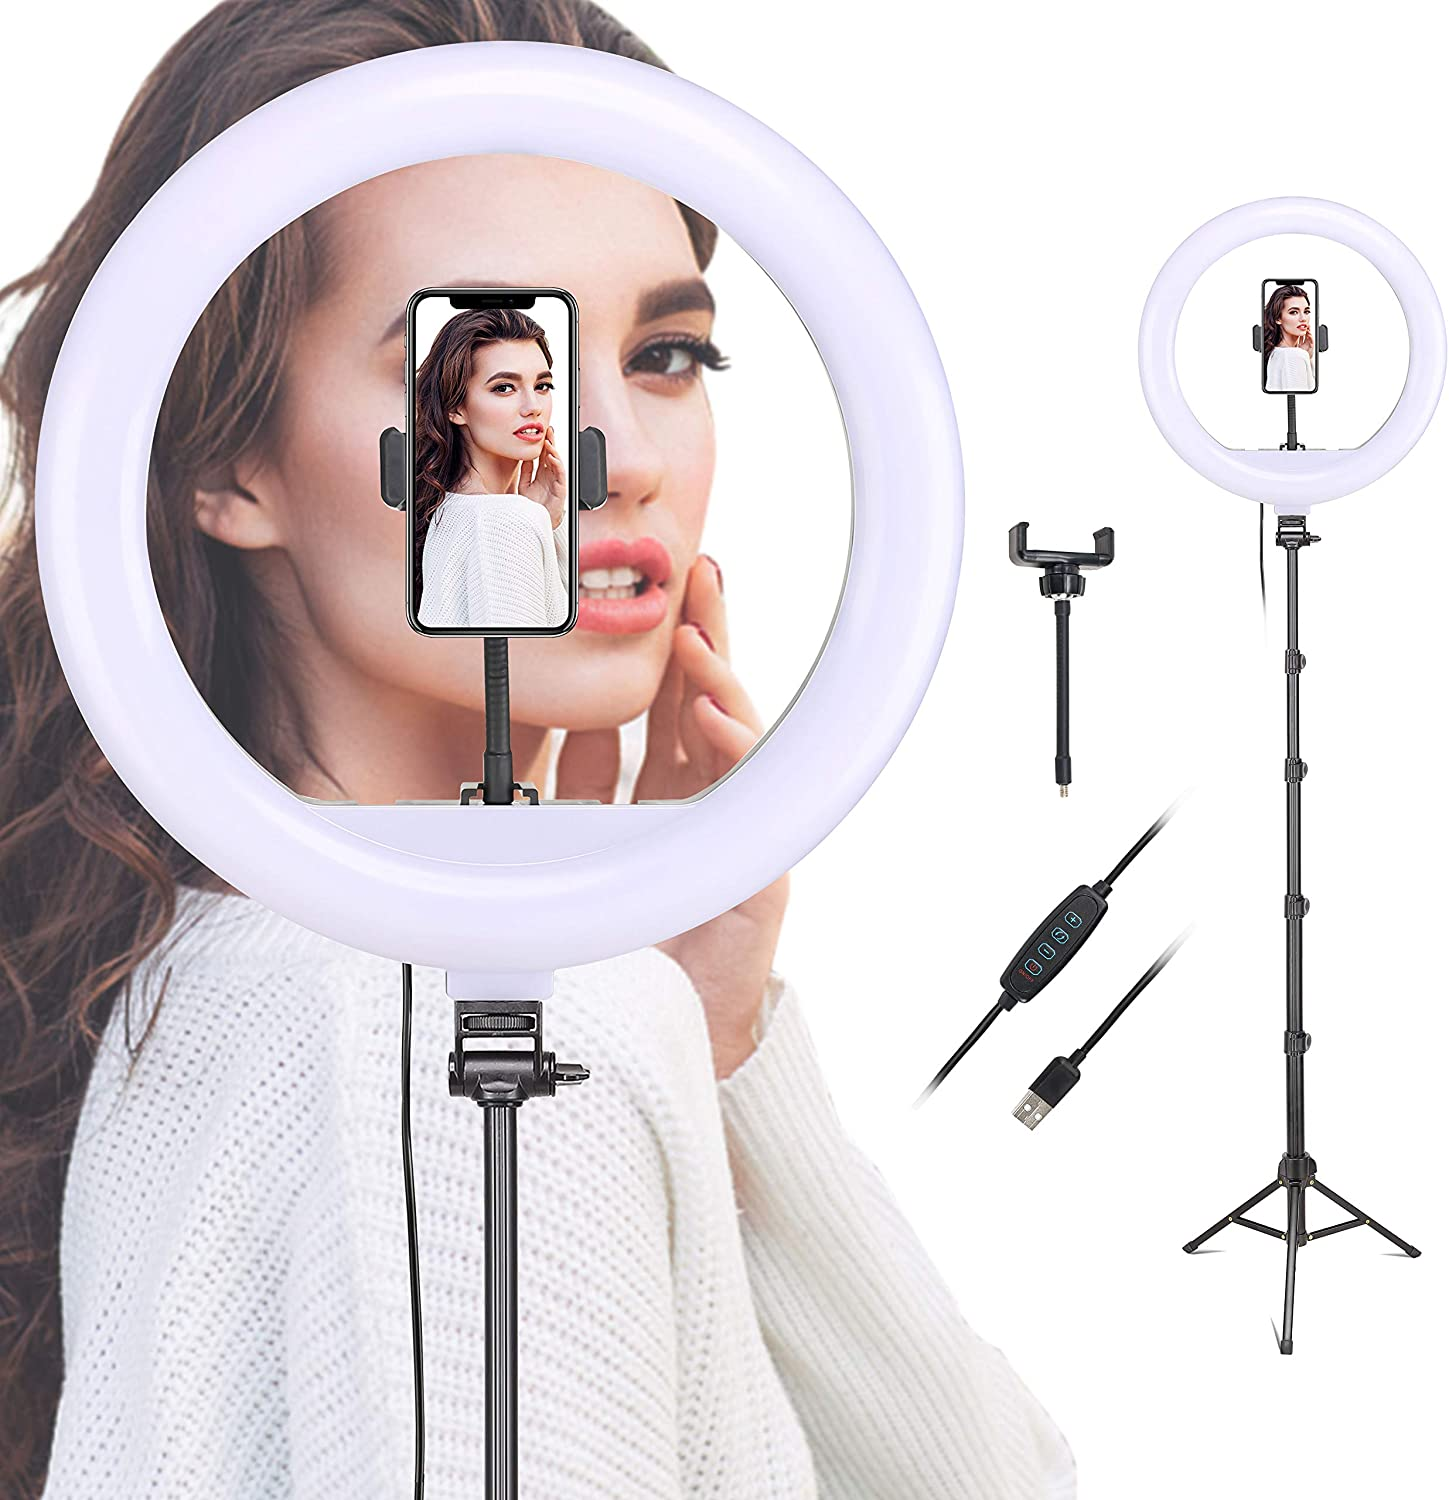 Dimmable Ring Light 12-Inch Led Beauty Photography Fill Light with Foldable Tripod Stand Cellphone Holder for Camera Phone YouTube Live Streaming Self-Portrait Selfie Video Studio Shooting